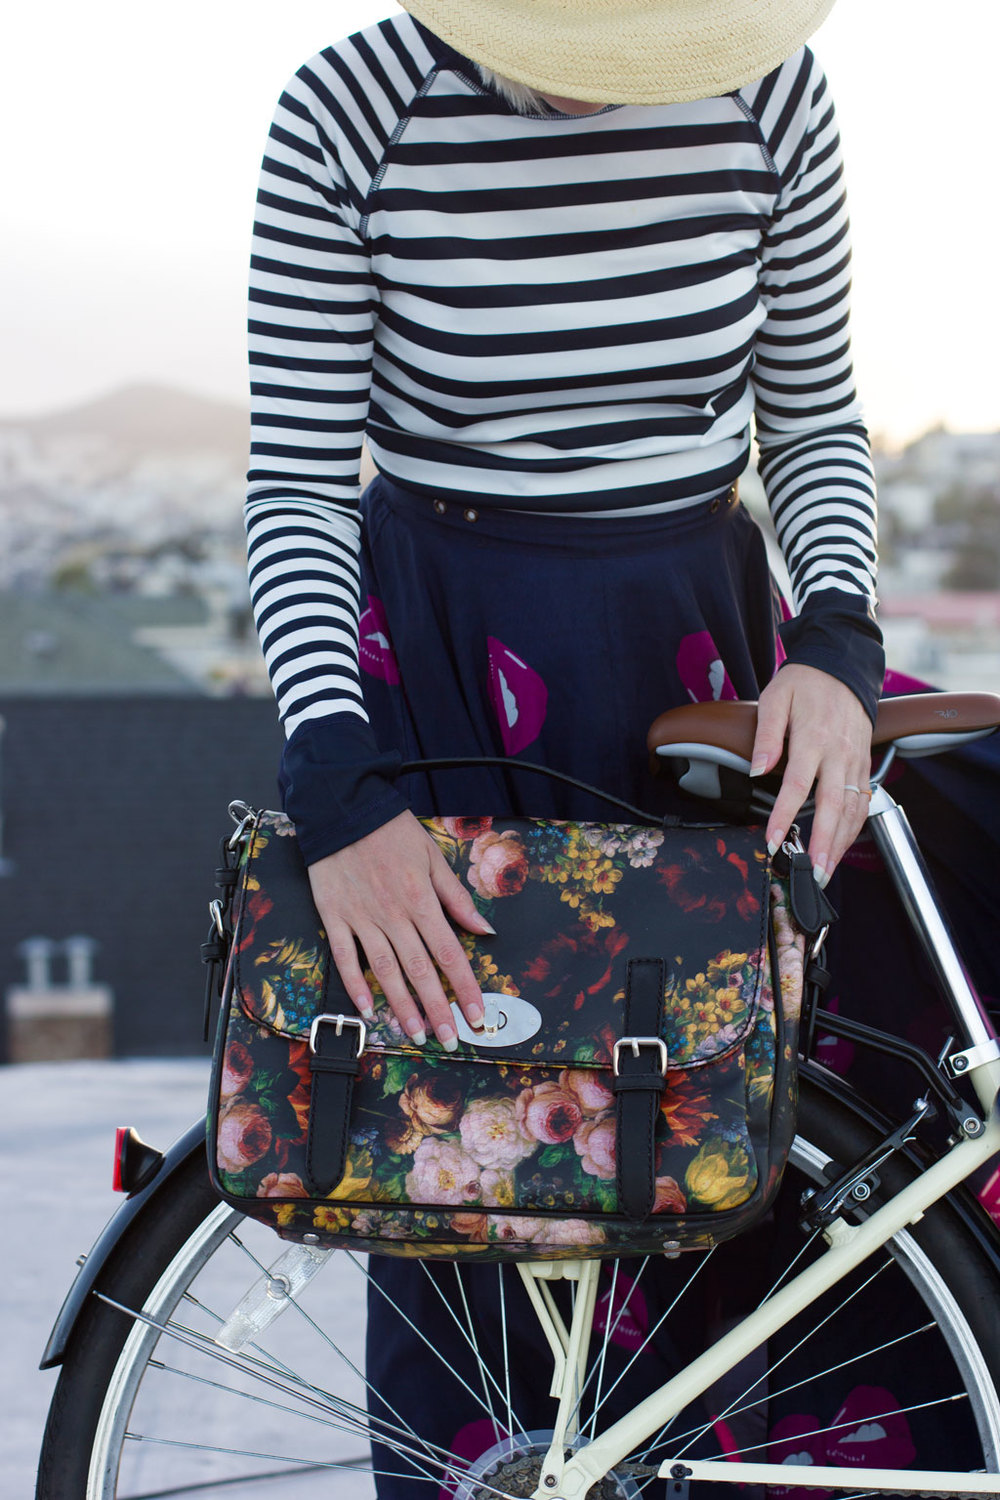 Special-Flower-Bike-Bag-on-Bike-2.jpg